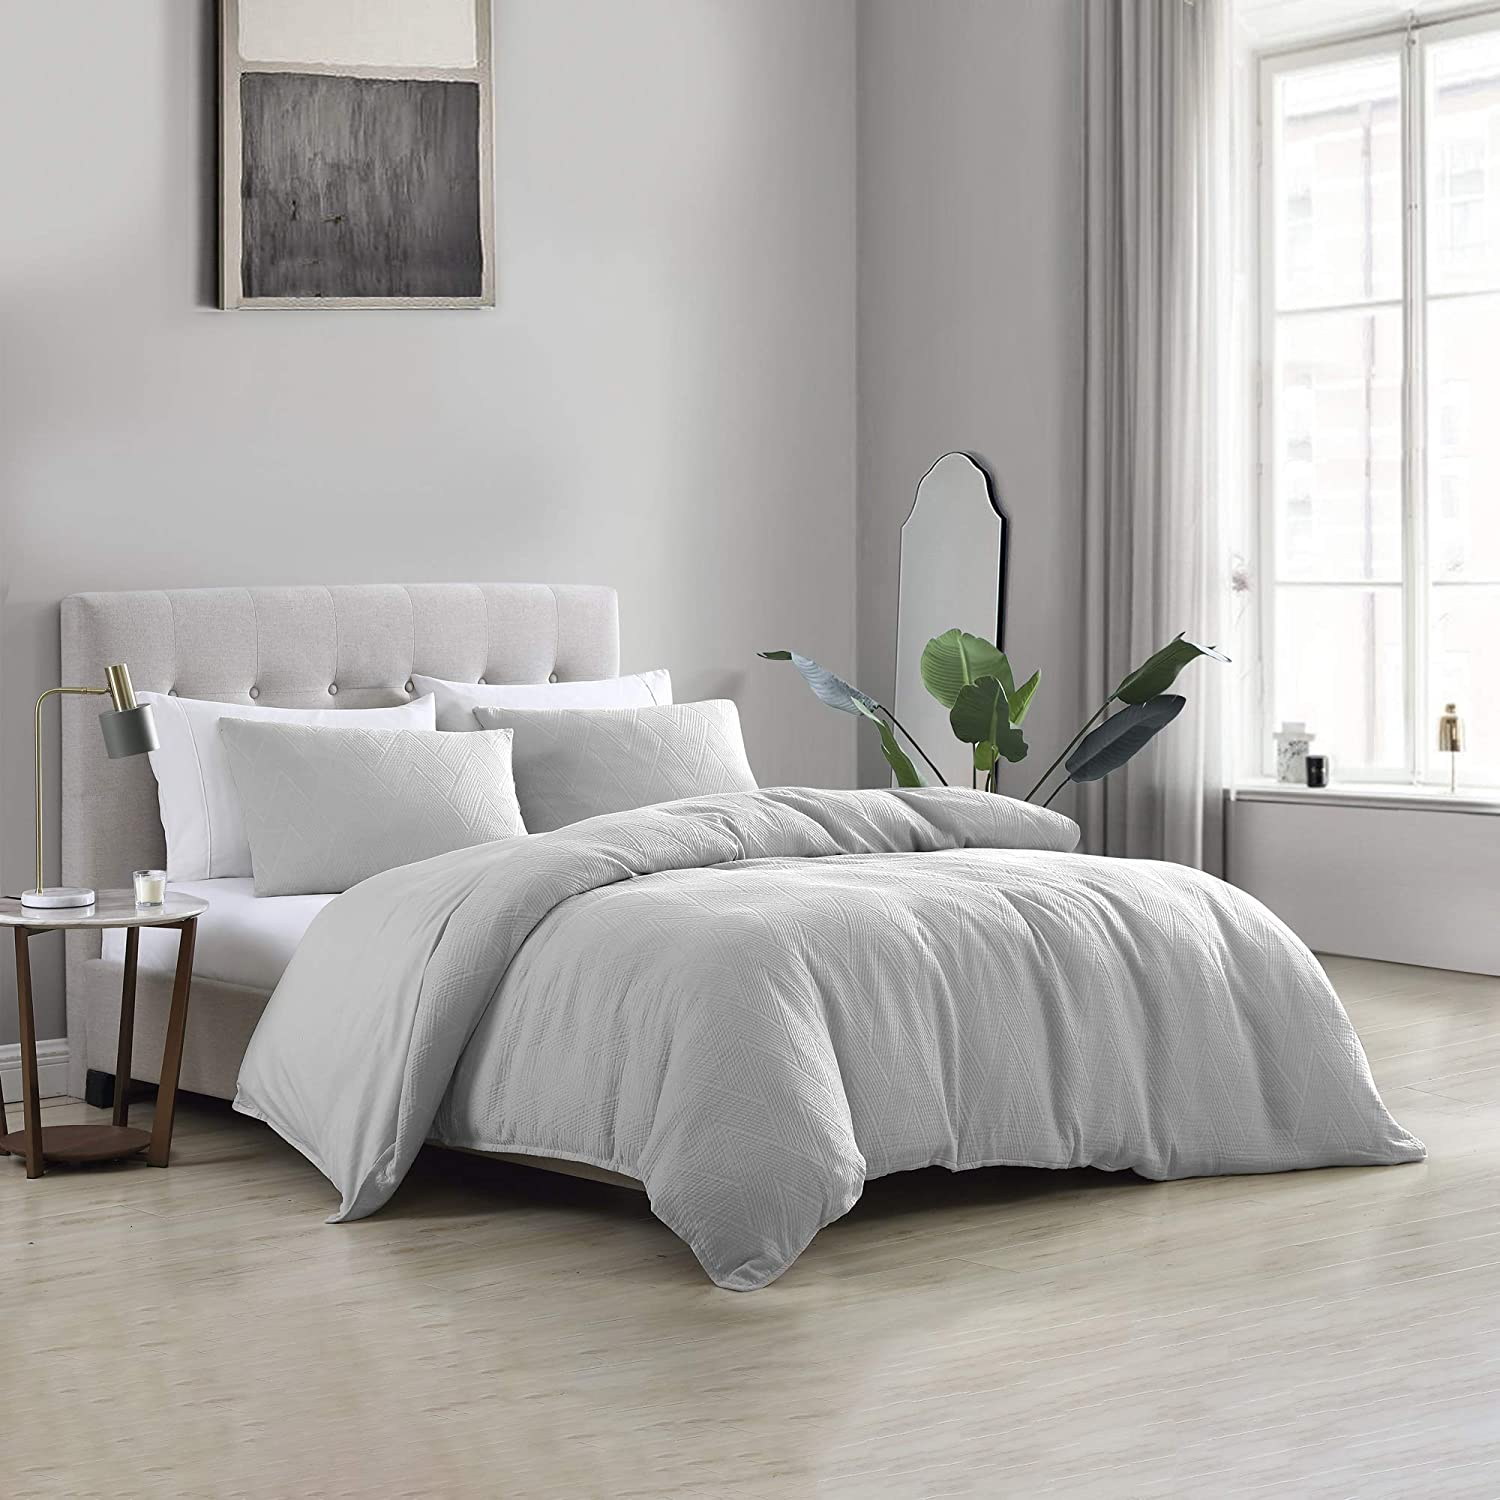 Brielle Home Wesley Solid Cotton Matelasse Textured Duvet Cover Set, Silver, King, Gray